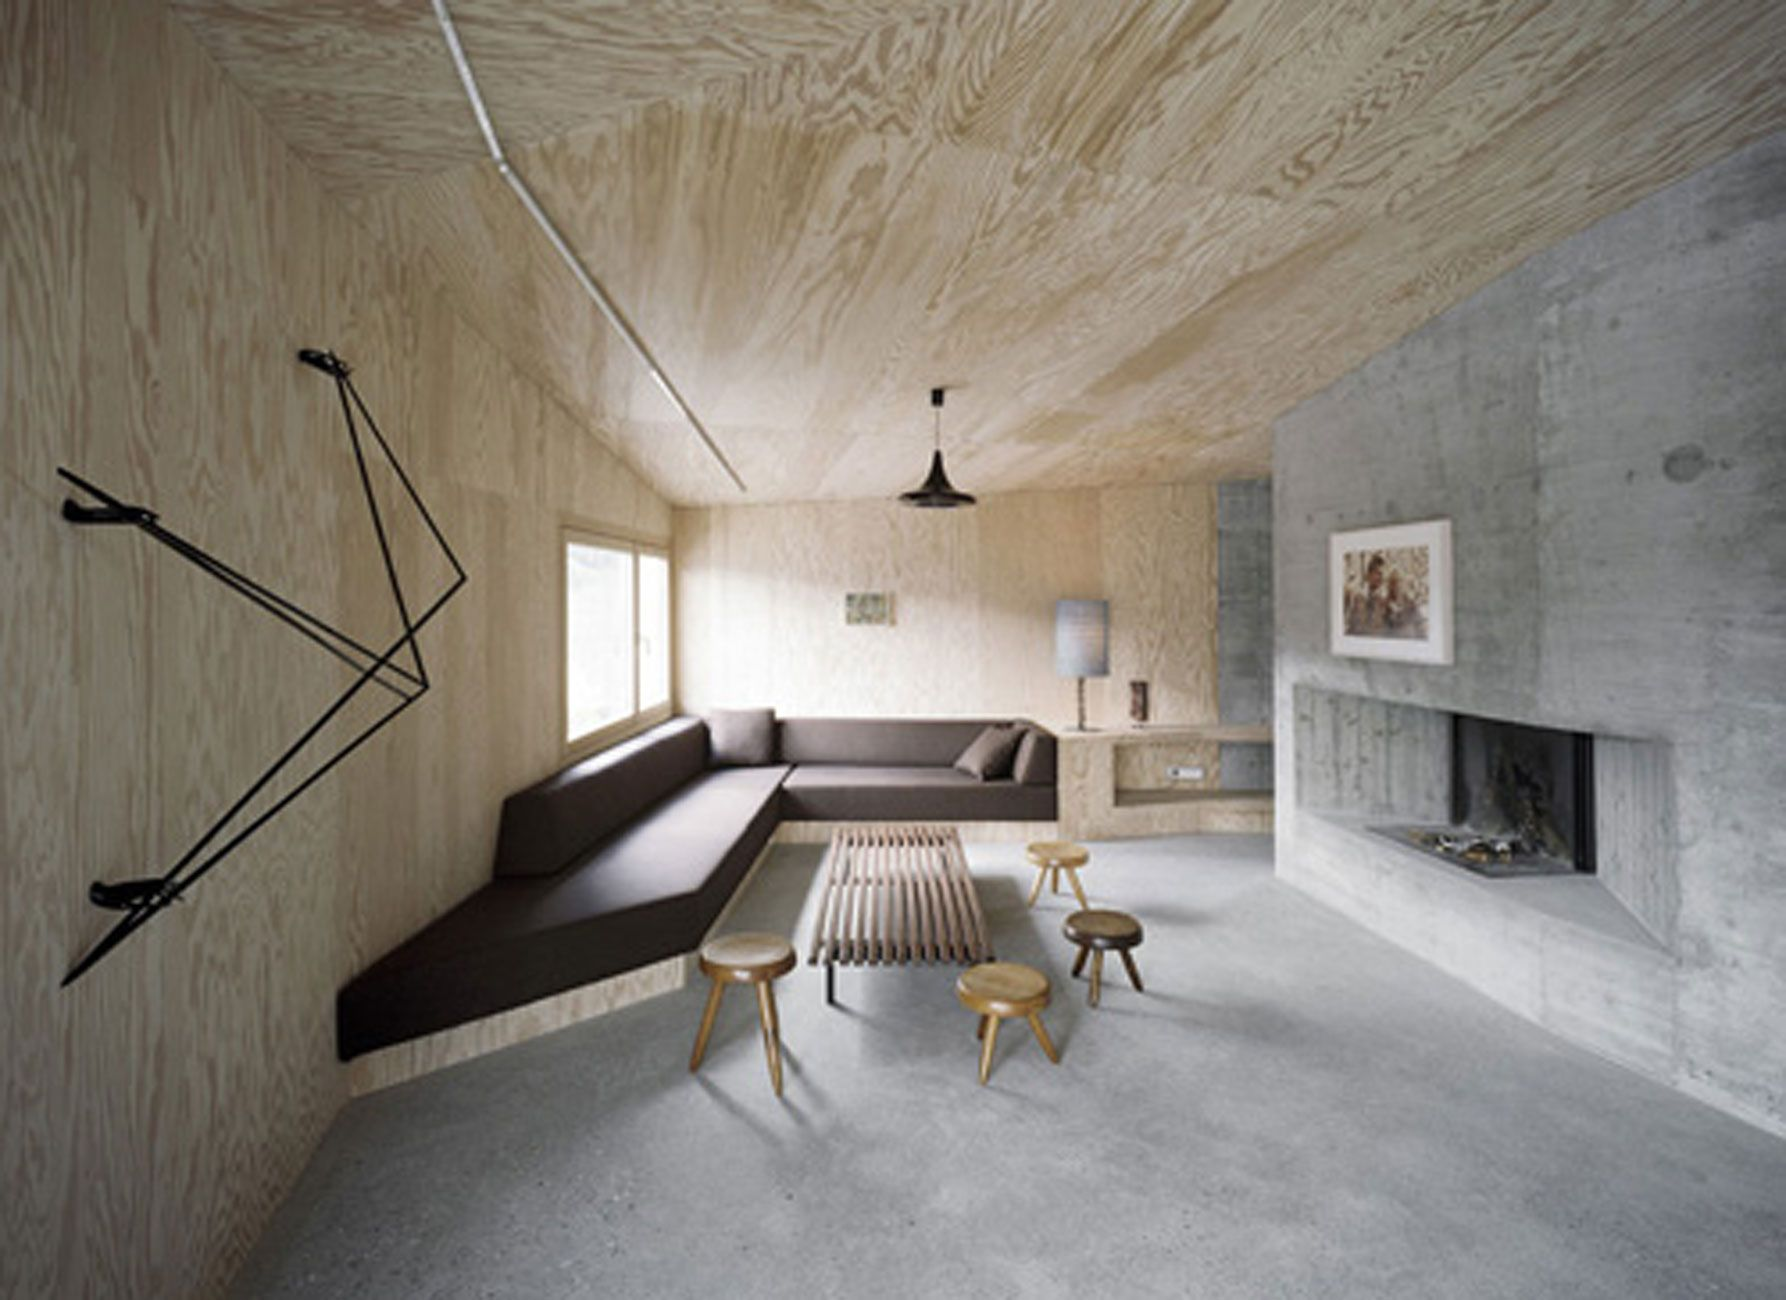 House Solid Concrete Architecture And Minimalist Interior Design In Berlin Living Room